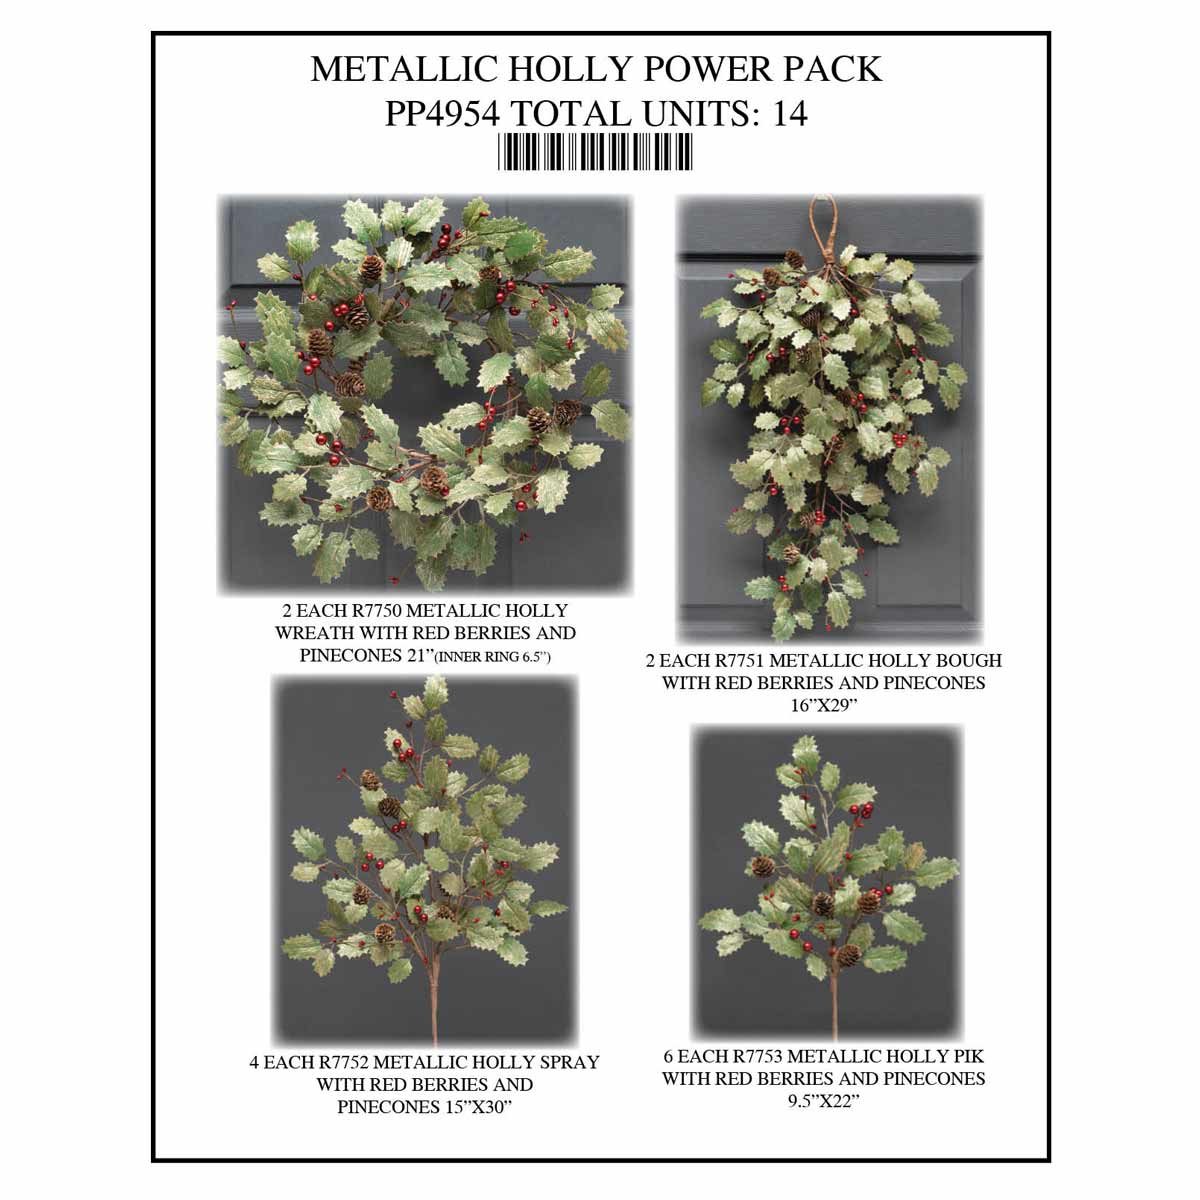 HOLLY METALLIC COLLECTION POWER PACK 14 UNITS PP4954